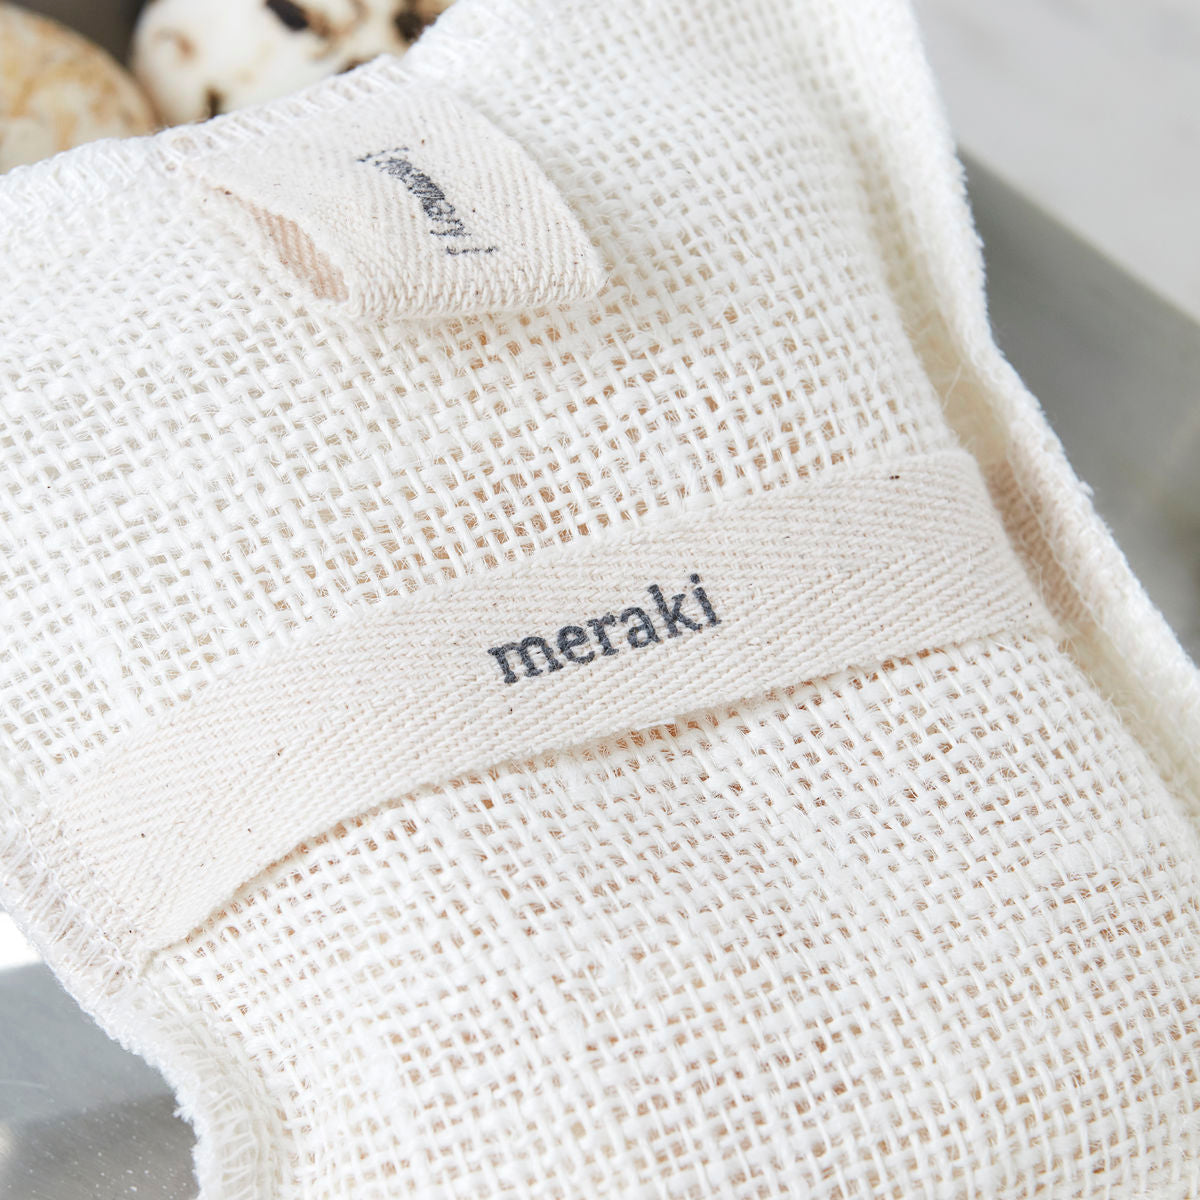 MERAKI ROSEMARY BATH MITT